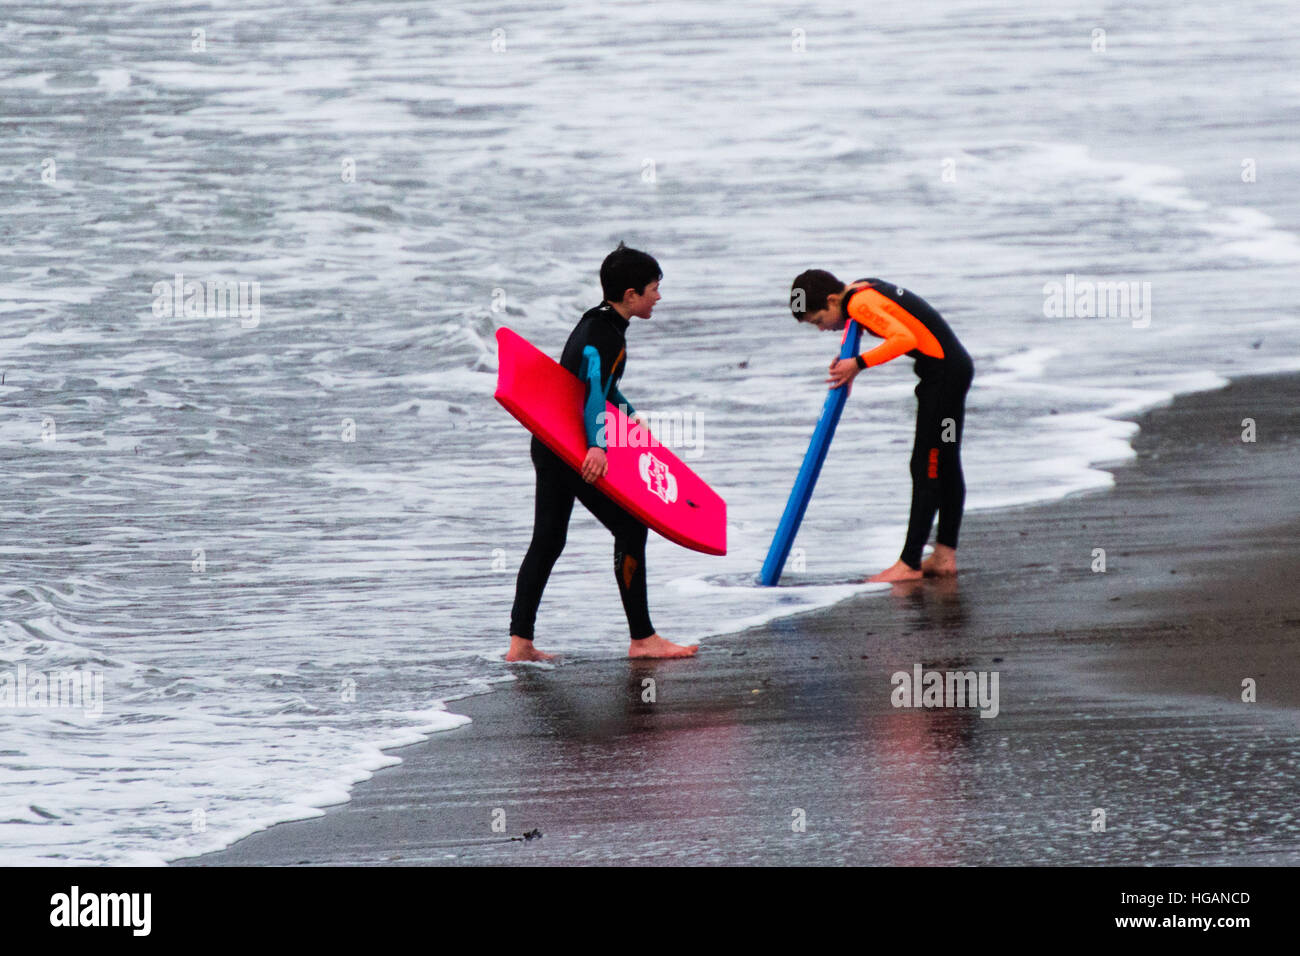 Aberystwyth Wales UK, Saturday 07 January 2017  UK Weather: On a day of unusually mild,  overcast weather, two young - Stock Image